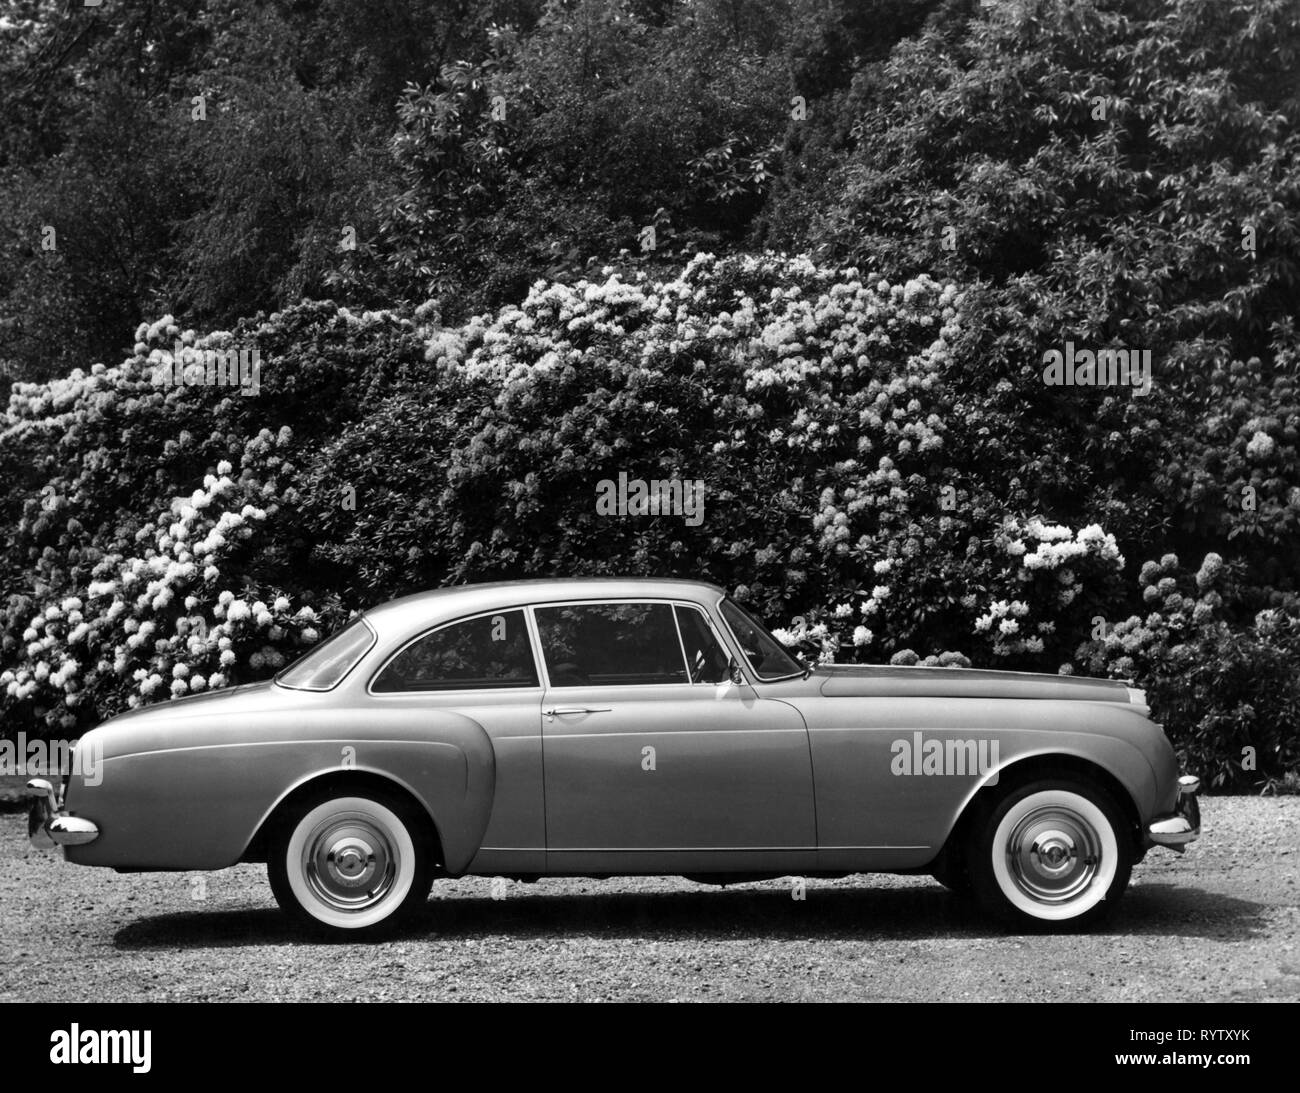 transport / transportation, car, vehicle variants, Bentley S2 Continental, with car body from H. J. Mulliner, 1959 - 1962, view from right, S 2, side view, upper class, upper-class, luxury, luxuries, class deluxe, coupe, two-door model, motor car, auto, automobile, passenger car, motorcar, motorcars, autos, automobiles, passenger cars, clipping, cut out, cut-out, cut-outs, Great Britain, United Kingdom, 1950s, 50s, 1960s, 60s, 20th century, transport, transportation, car, cars, car body, vehicle body, body, bodywork, car bodies, view, views, hist, Additional-Rights-Clearance-Info-Not-Available - Stock Image